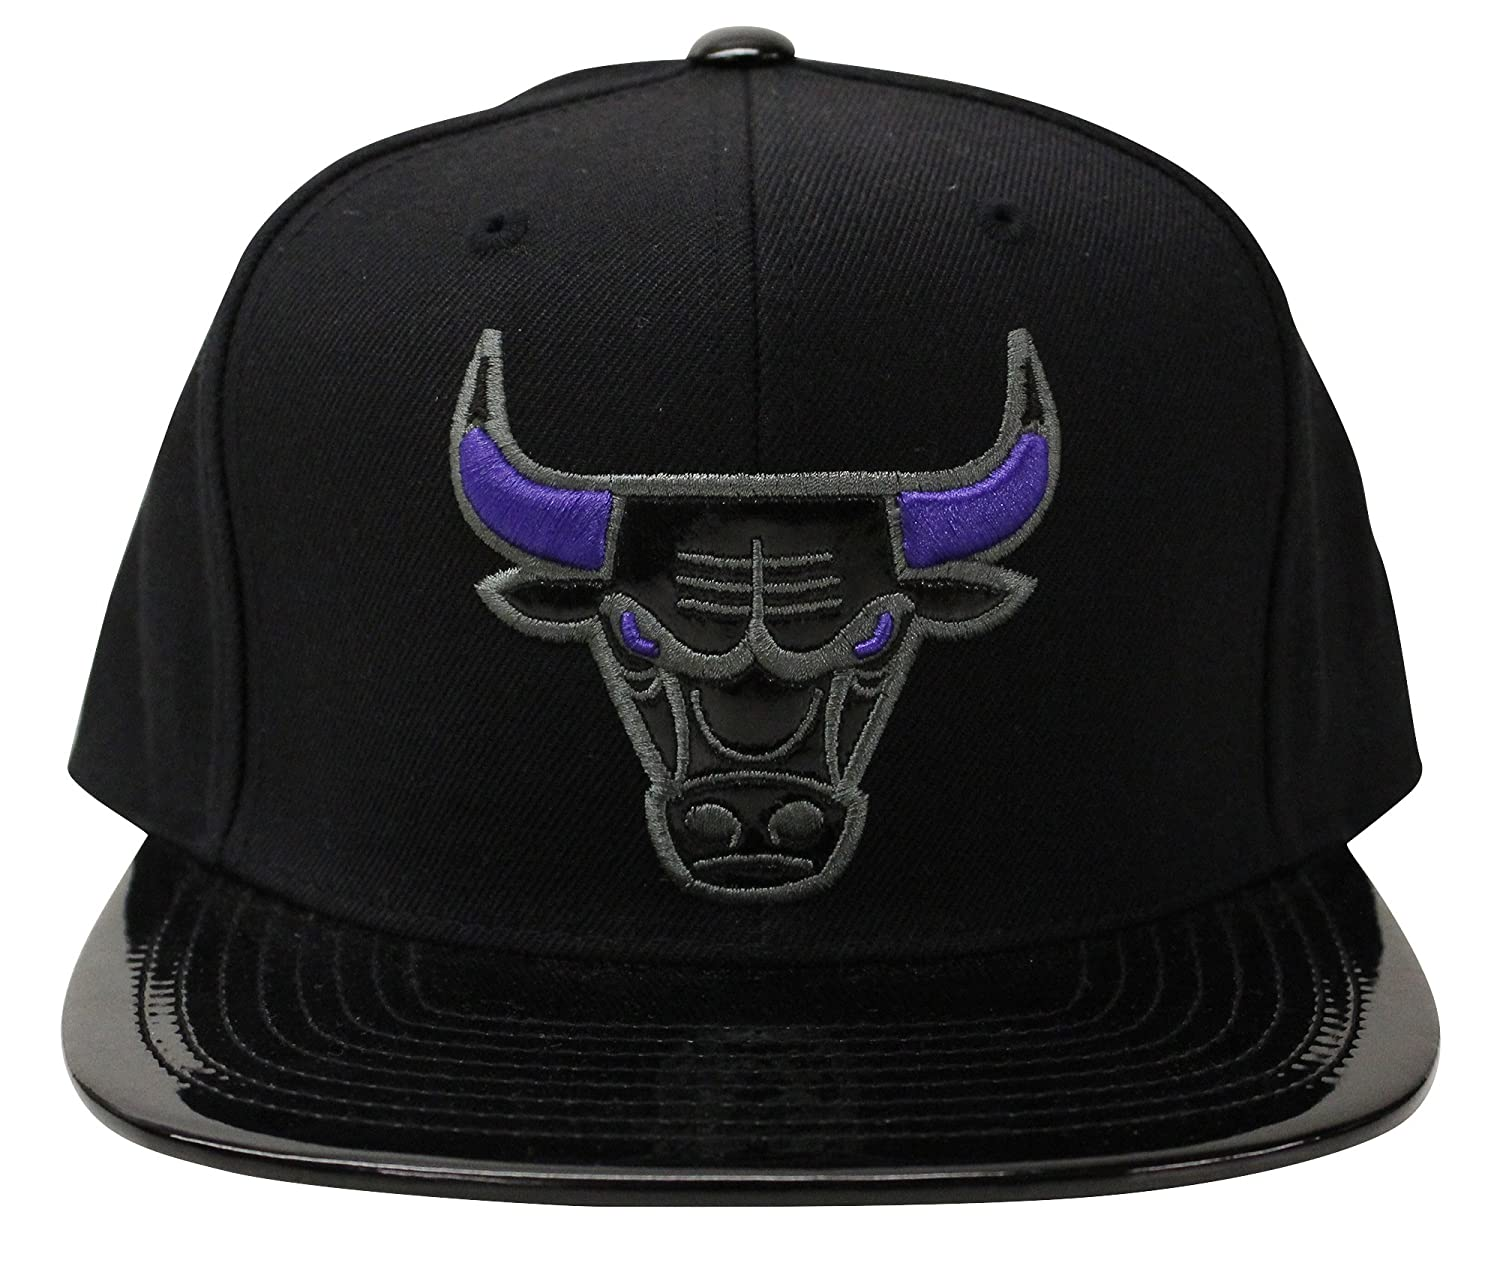 7a447aabf88 80% Acrylic 20% Wool blend - High-structured crown - Flat brim. High  quality embroidered logo of your favorite team on front